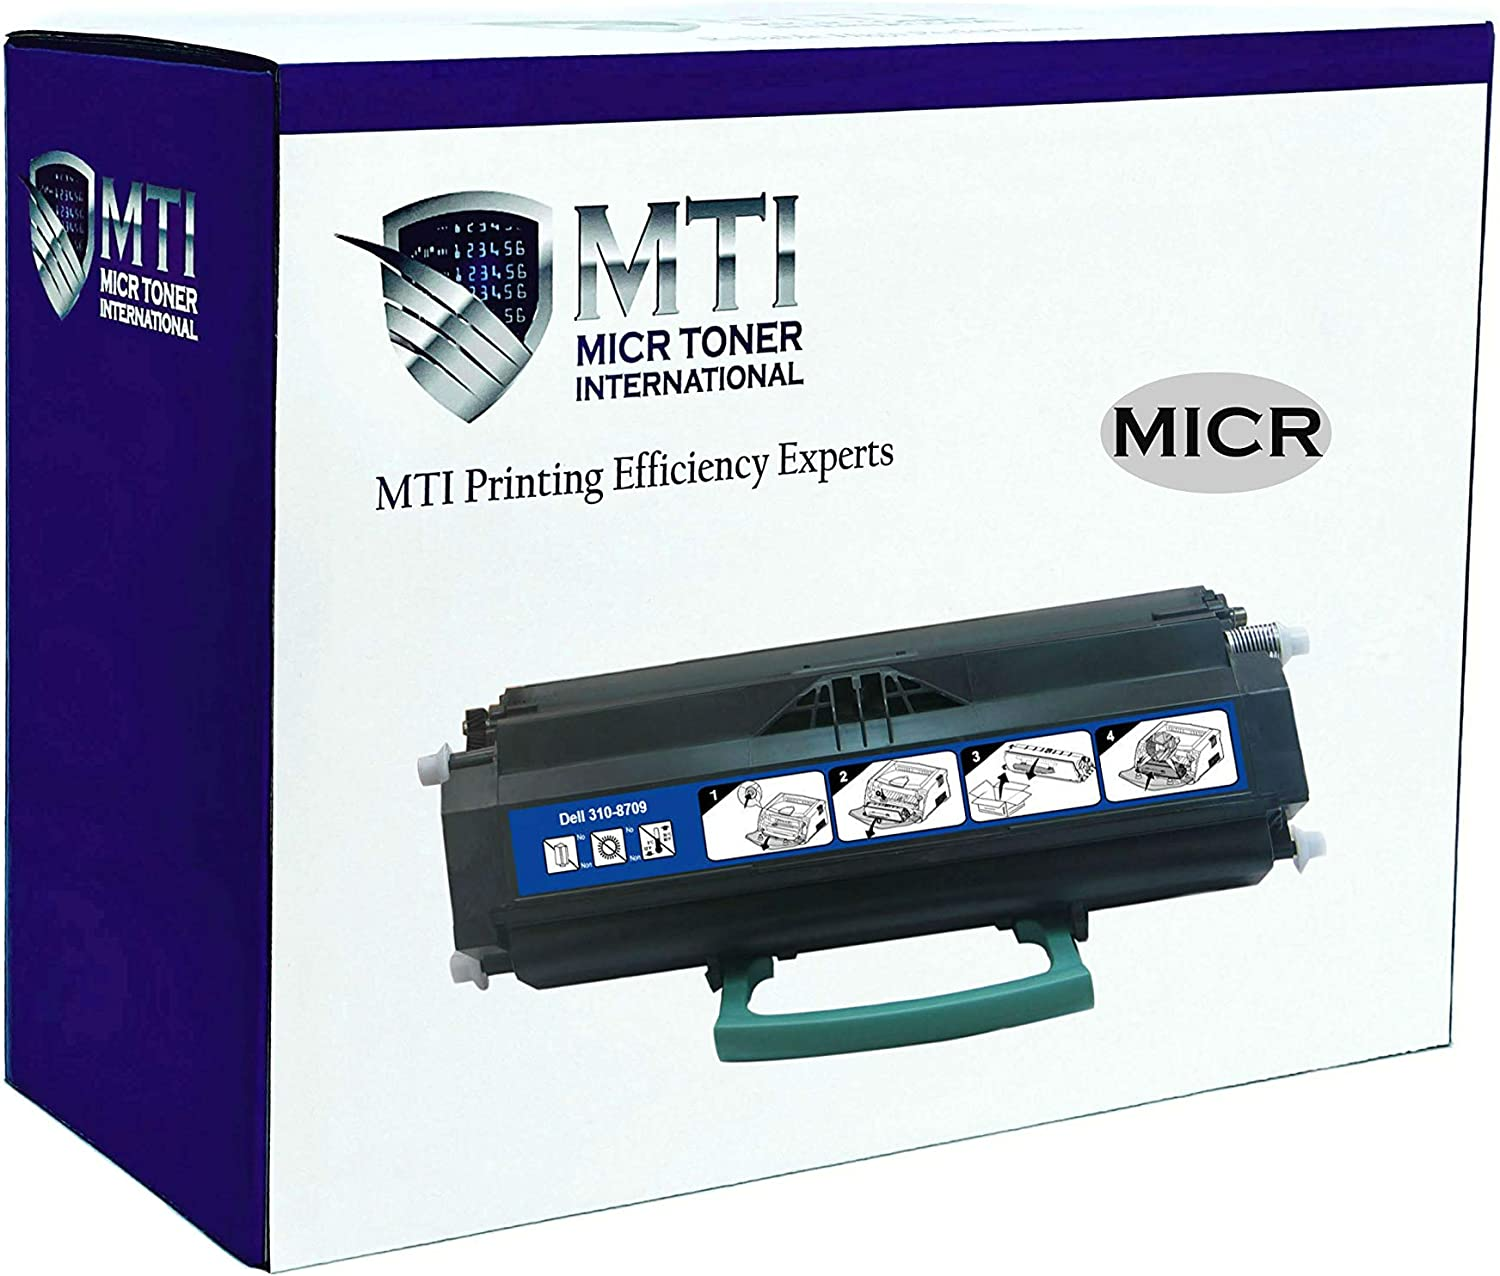 MICR Toner International Compatible MICR Toner Cartridge Replacement for Dell 310-8709 1720, 1720dn